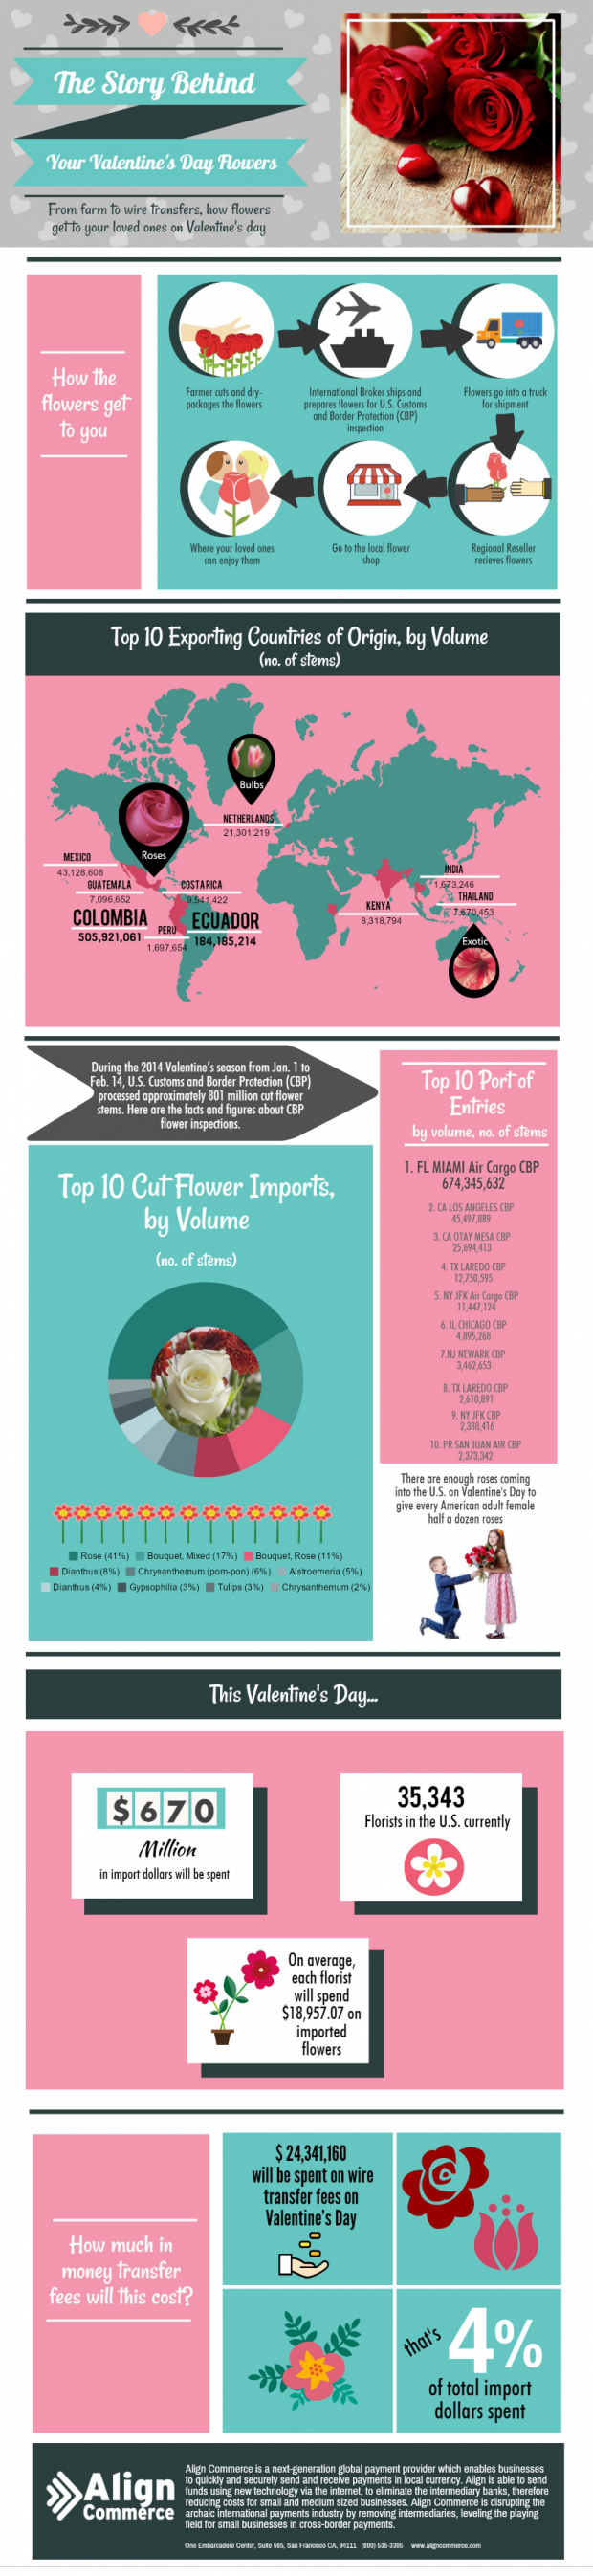 Flowers for Valentine's Day infographic